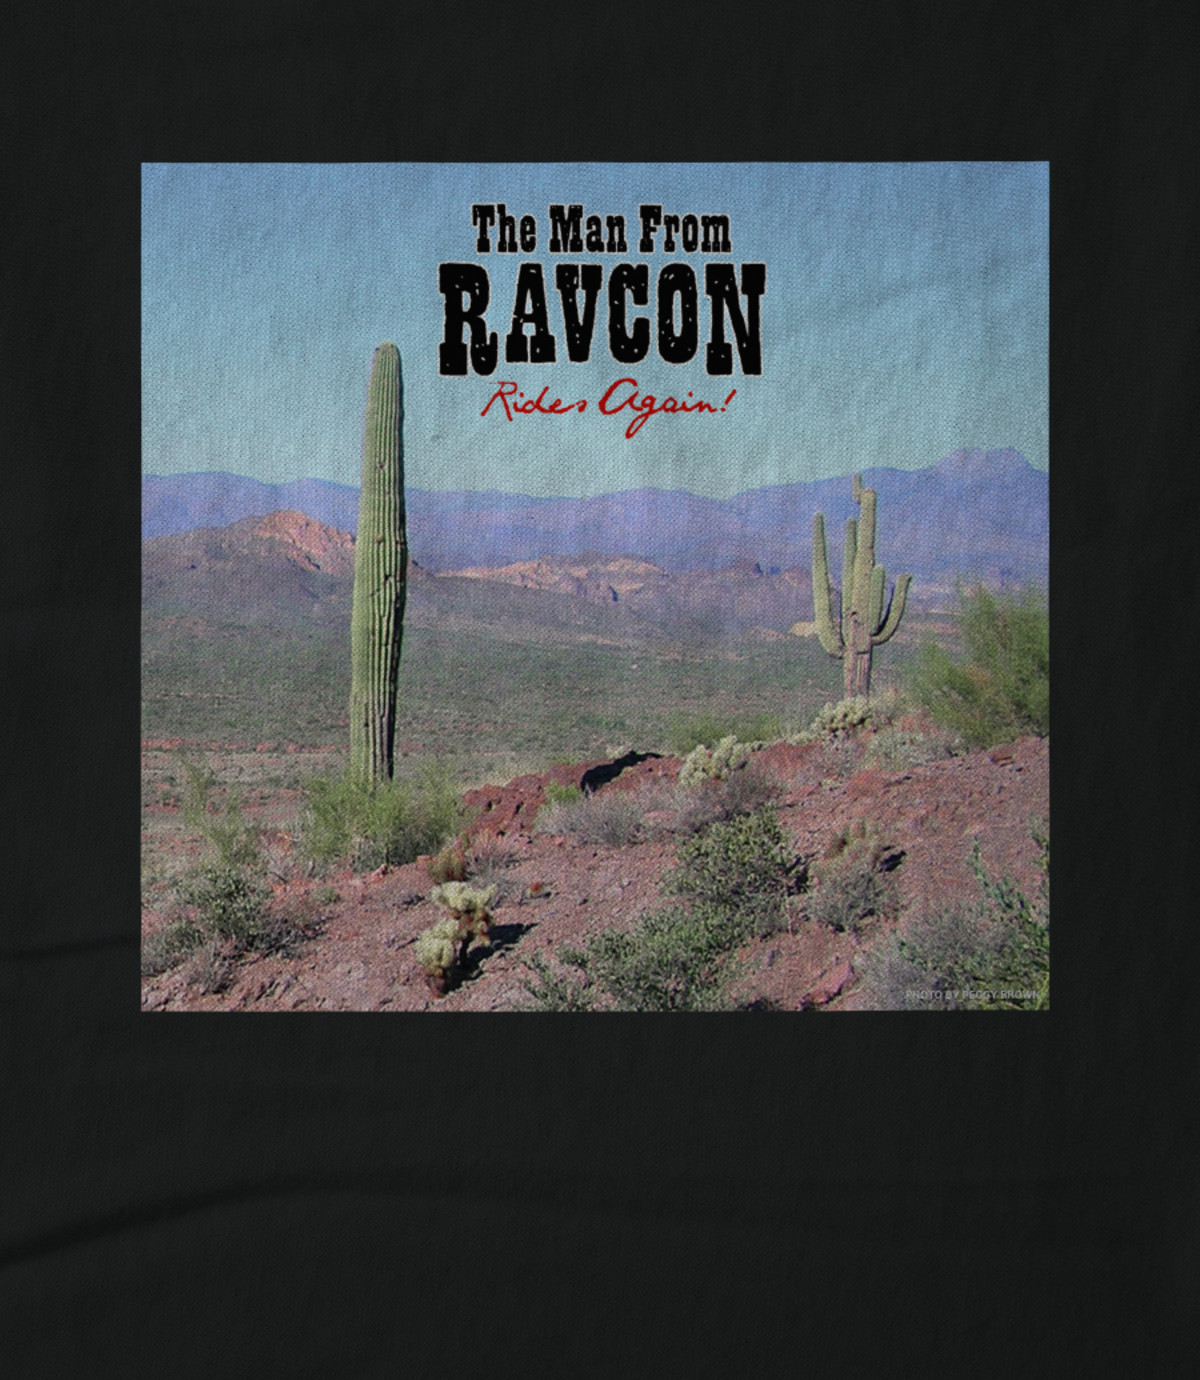 The man from ravcon rides again 1488550770